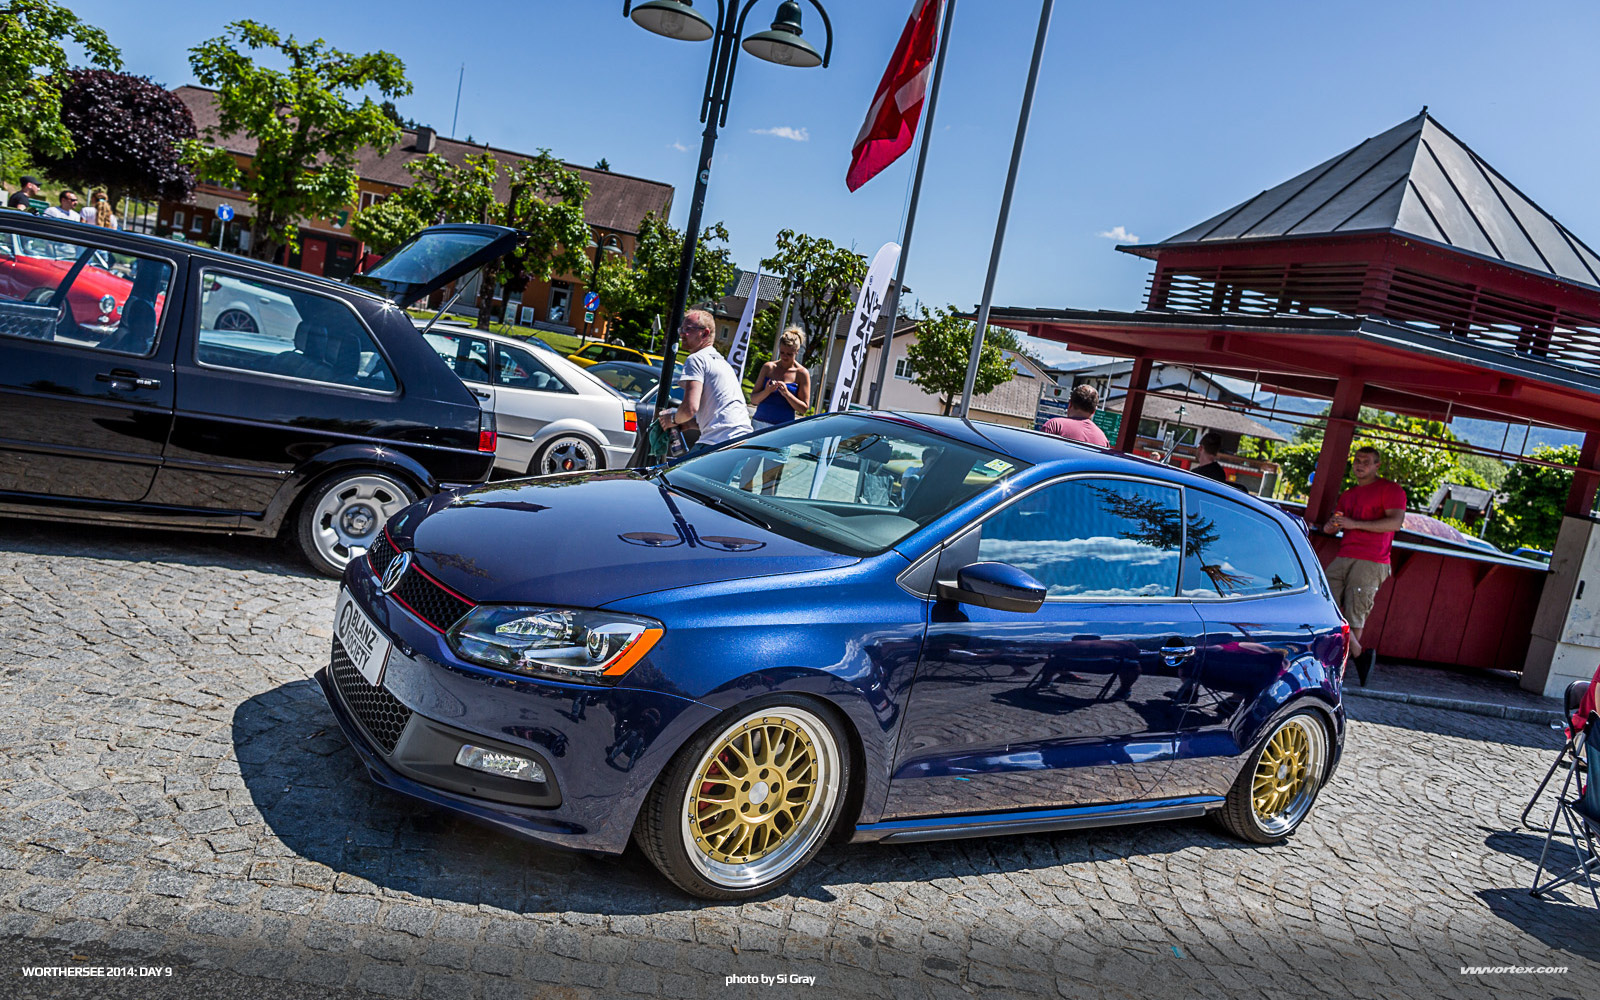 2014-Worthersee-Day-9-Si-Gray-375